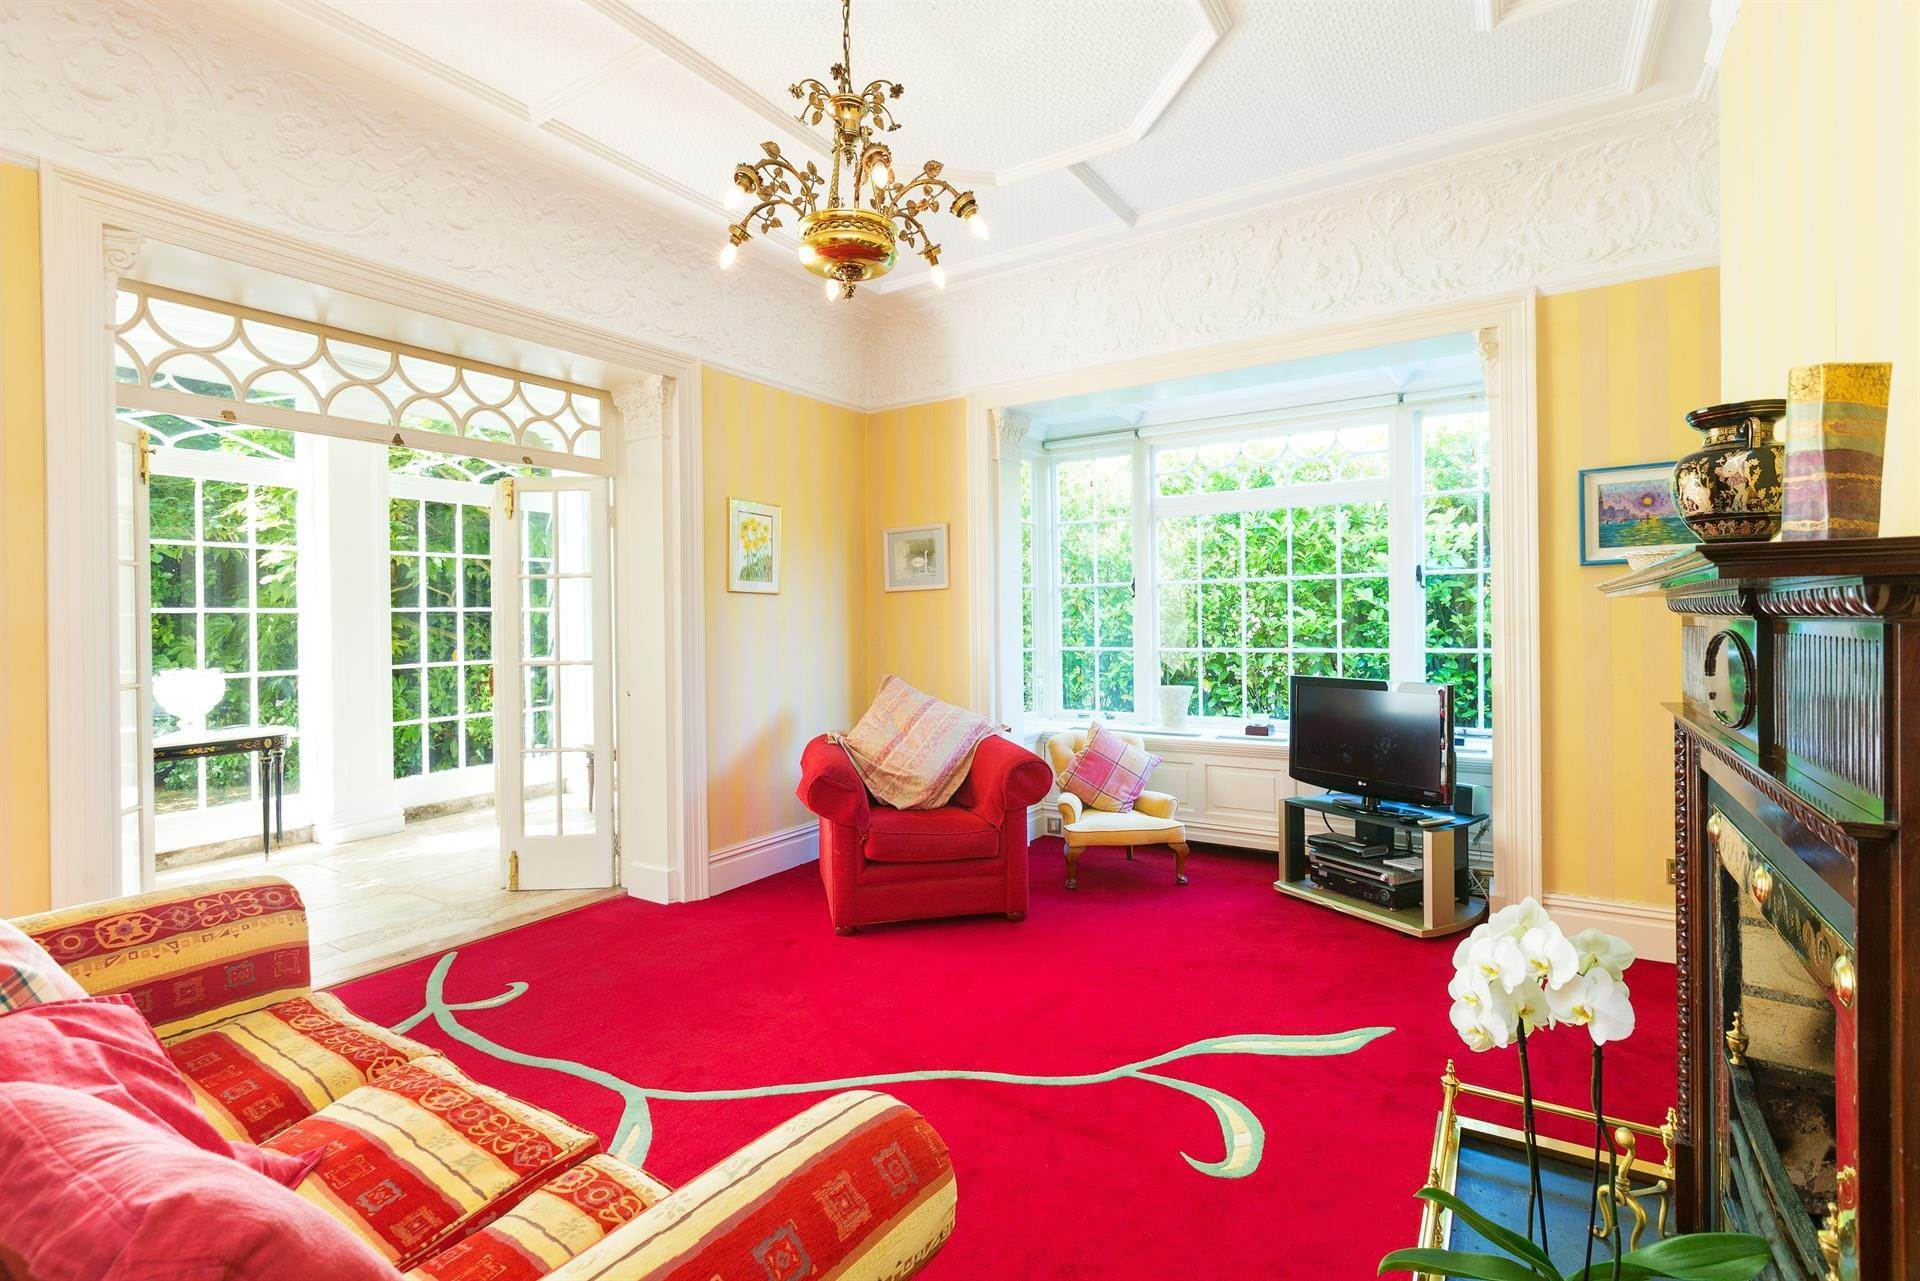 10. Single Family Home for Sale at Foxrock, Ireland